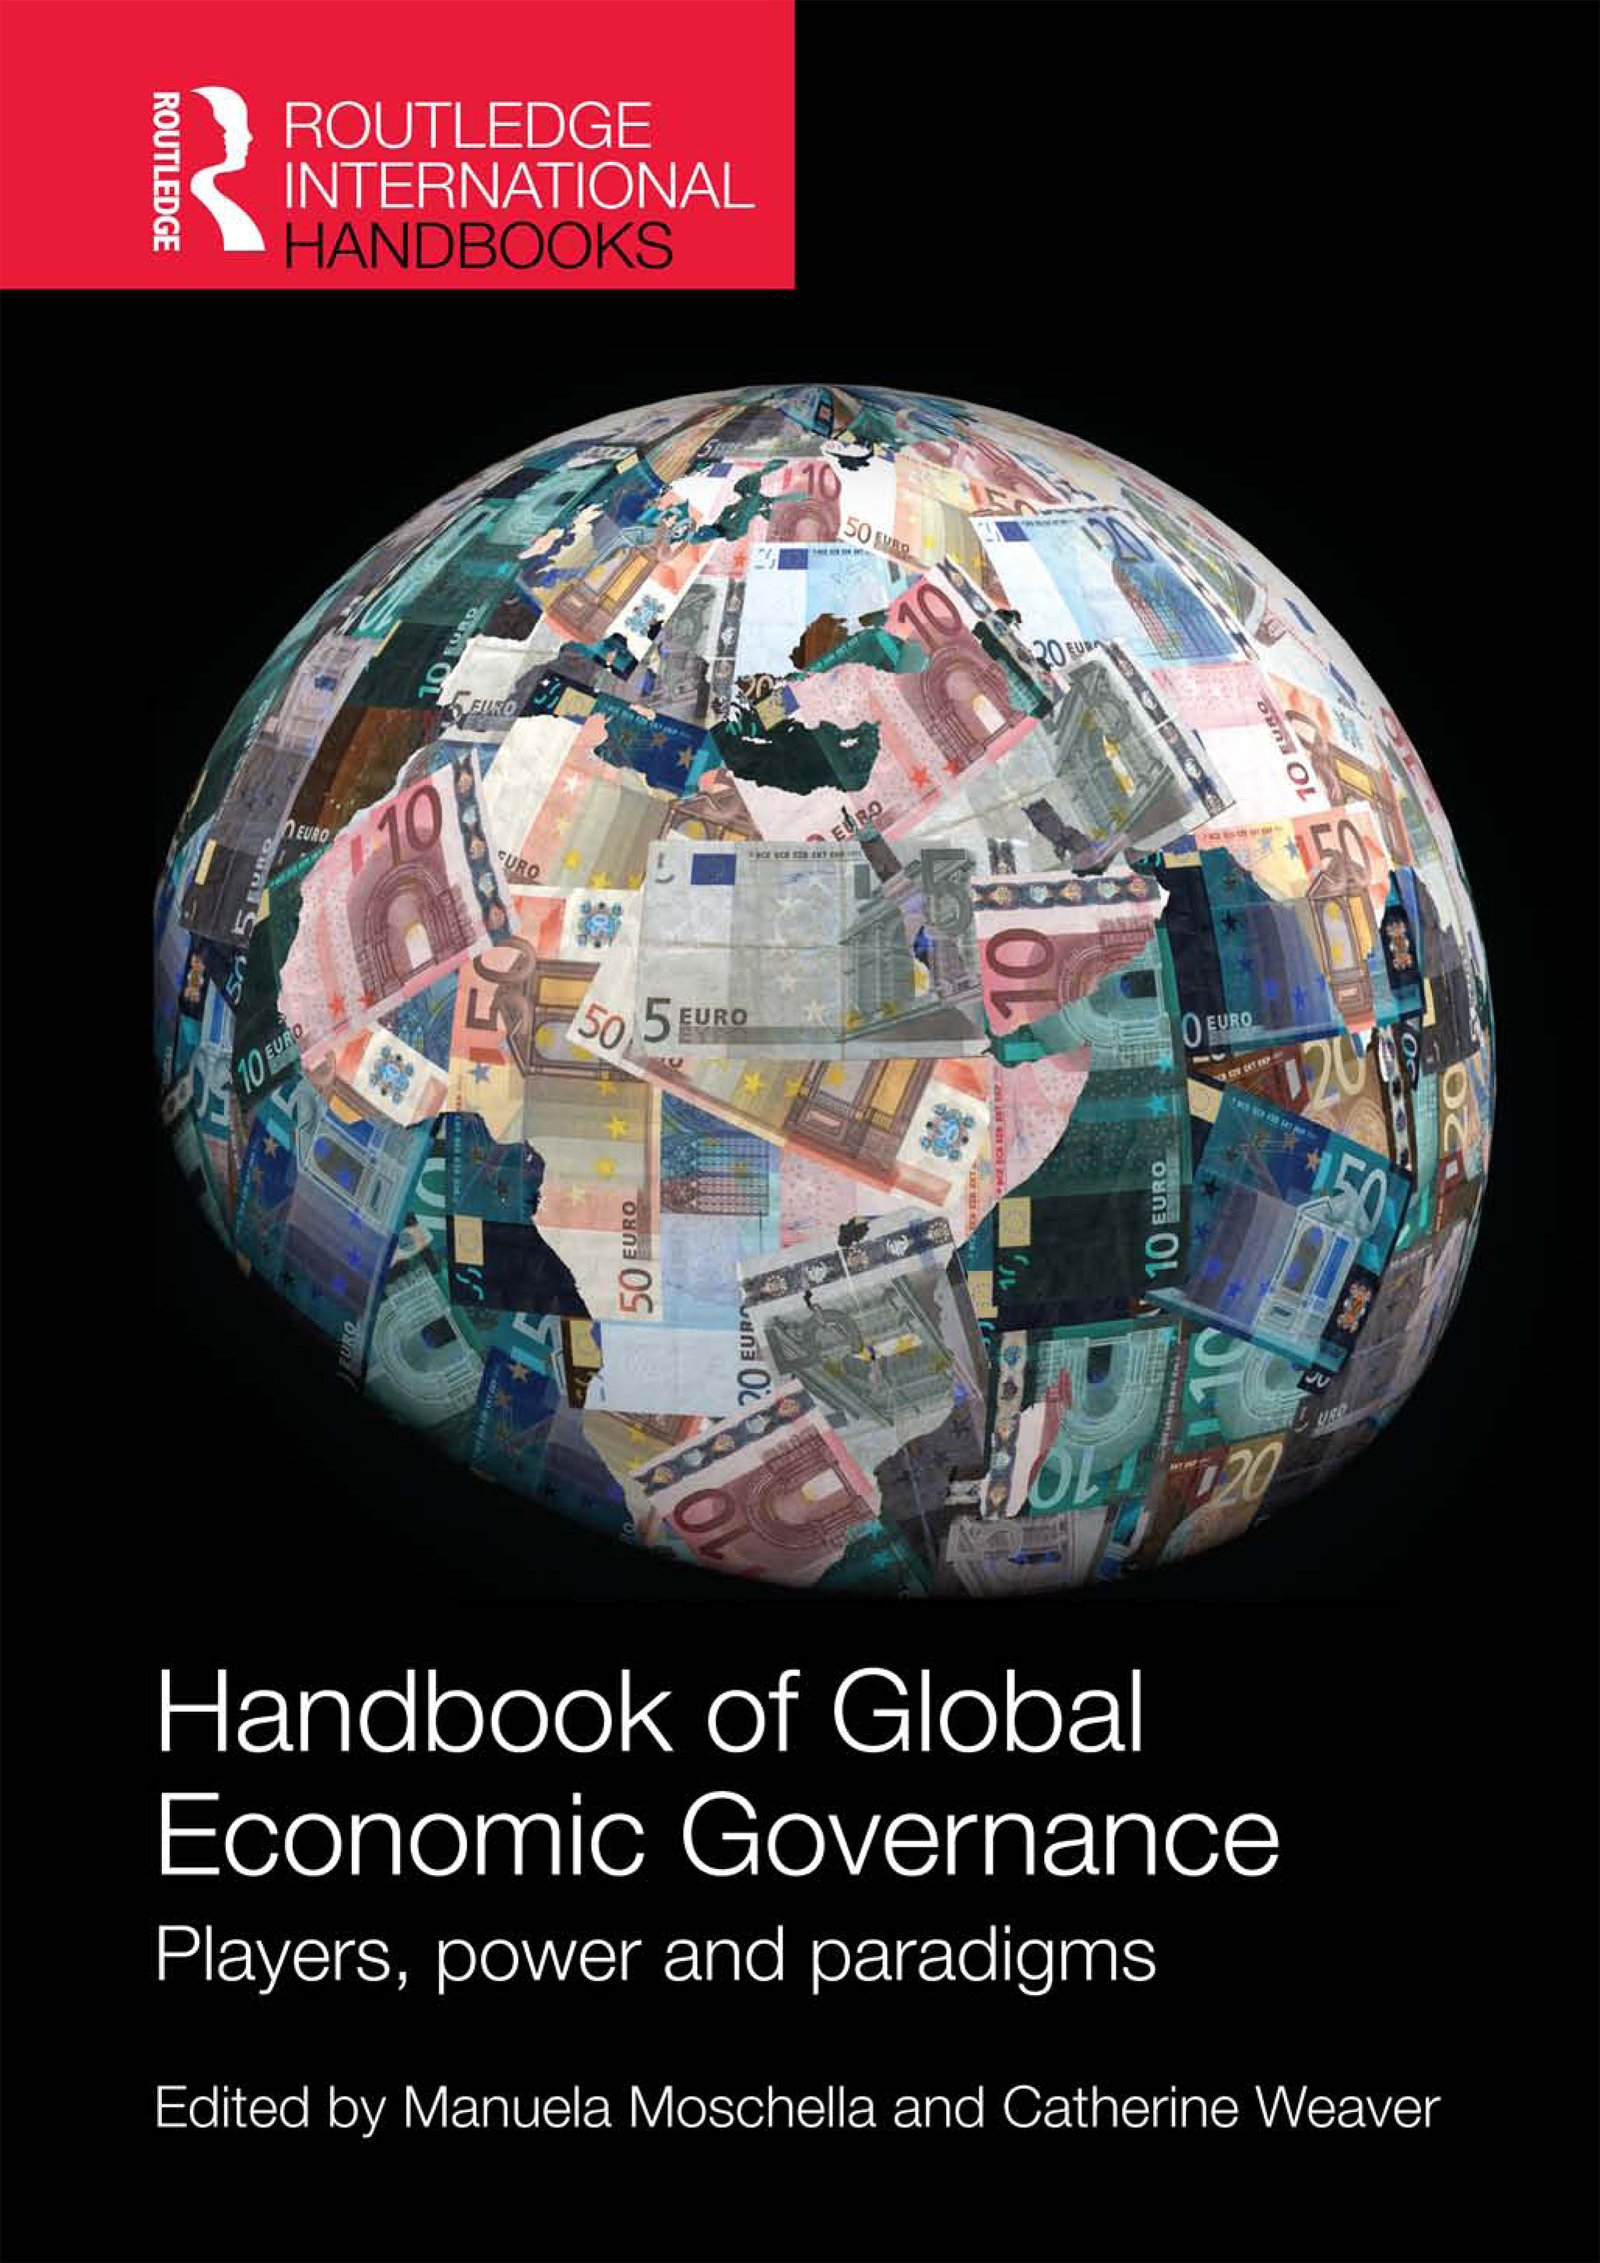 Handbook of Global Economic Governance